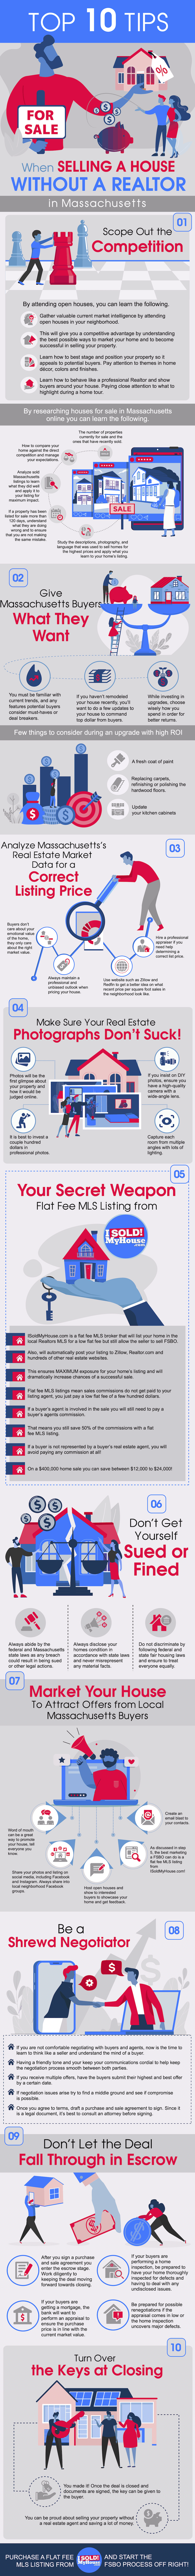 infographic of the 10 steps to sell a house in massachusetts without an agent